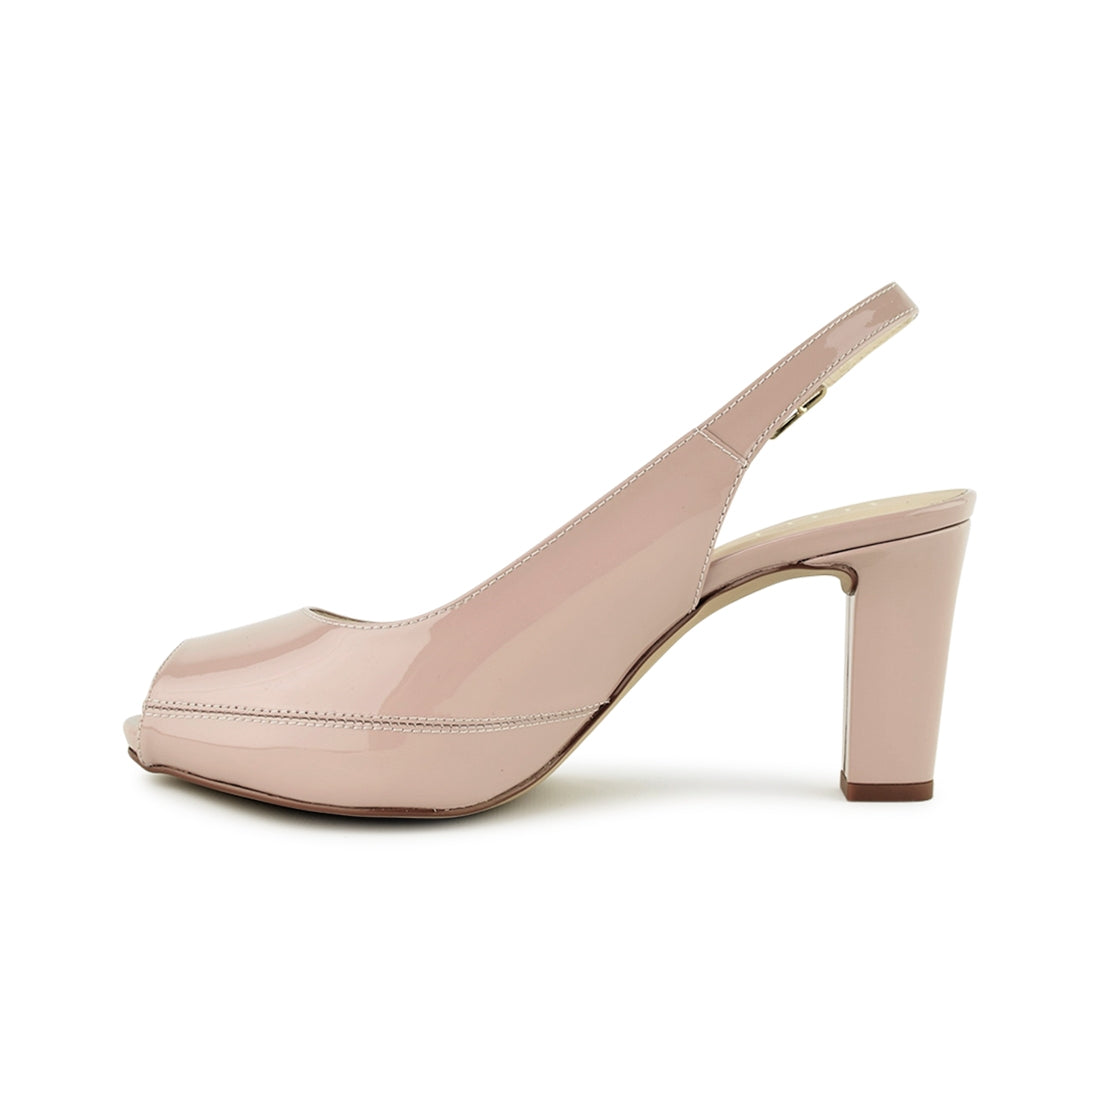 NICKY4 - Unisa Sling Back Blush Patent